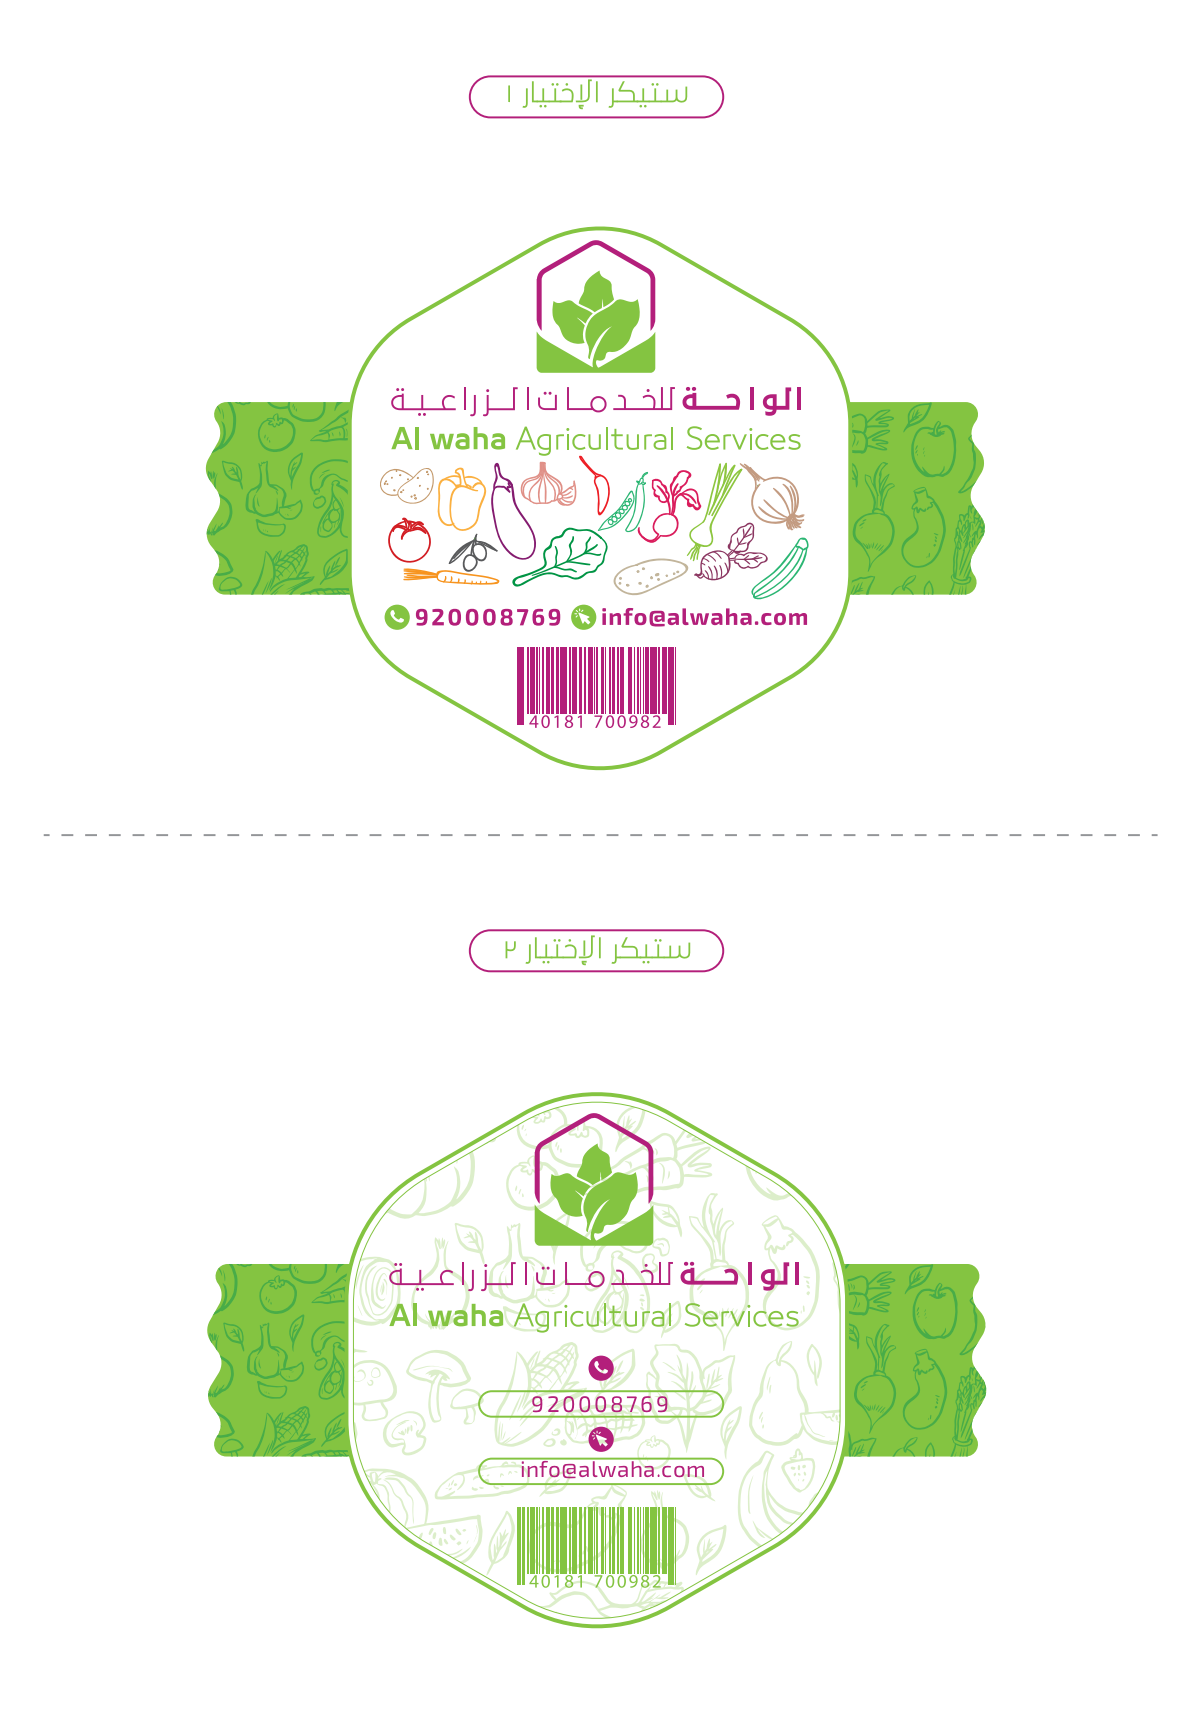 Al-Waha Agricultural Services - Sticker for the product